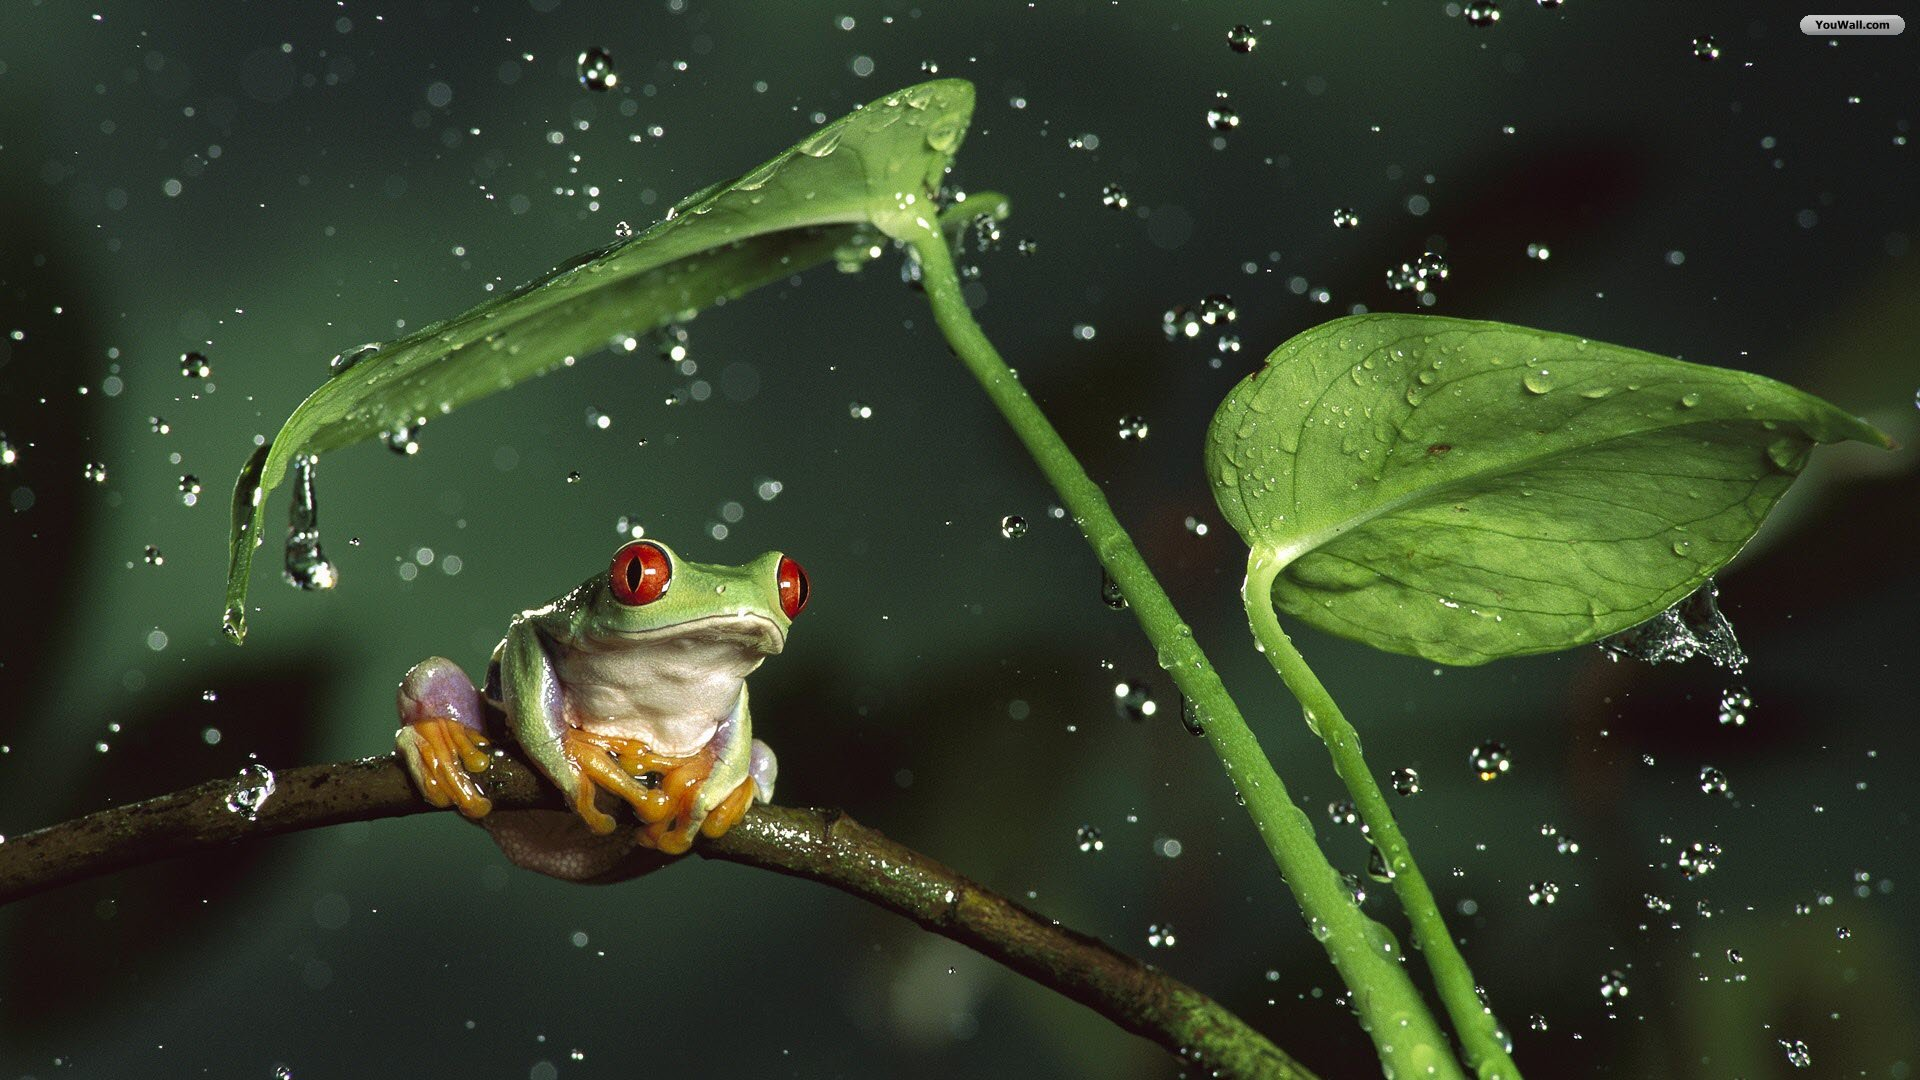 Under Rain Wallpaper HD wallpaper   Green Frog Under Rain Wallpaper 1920x1080